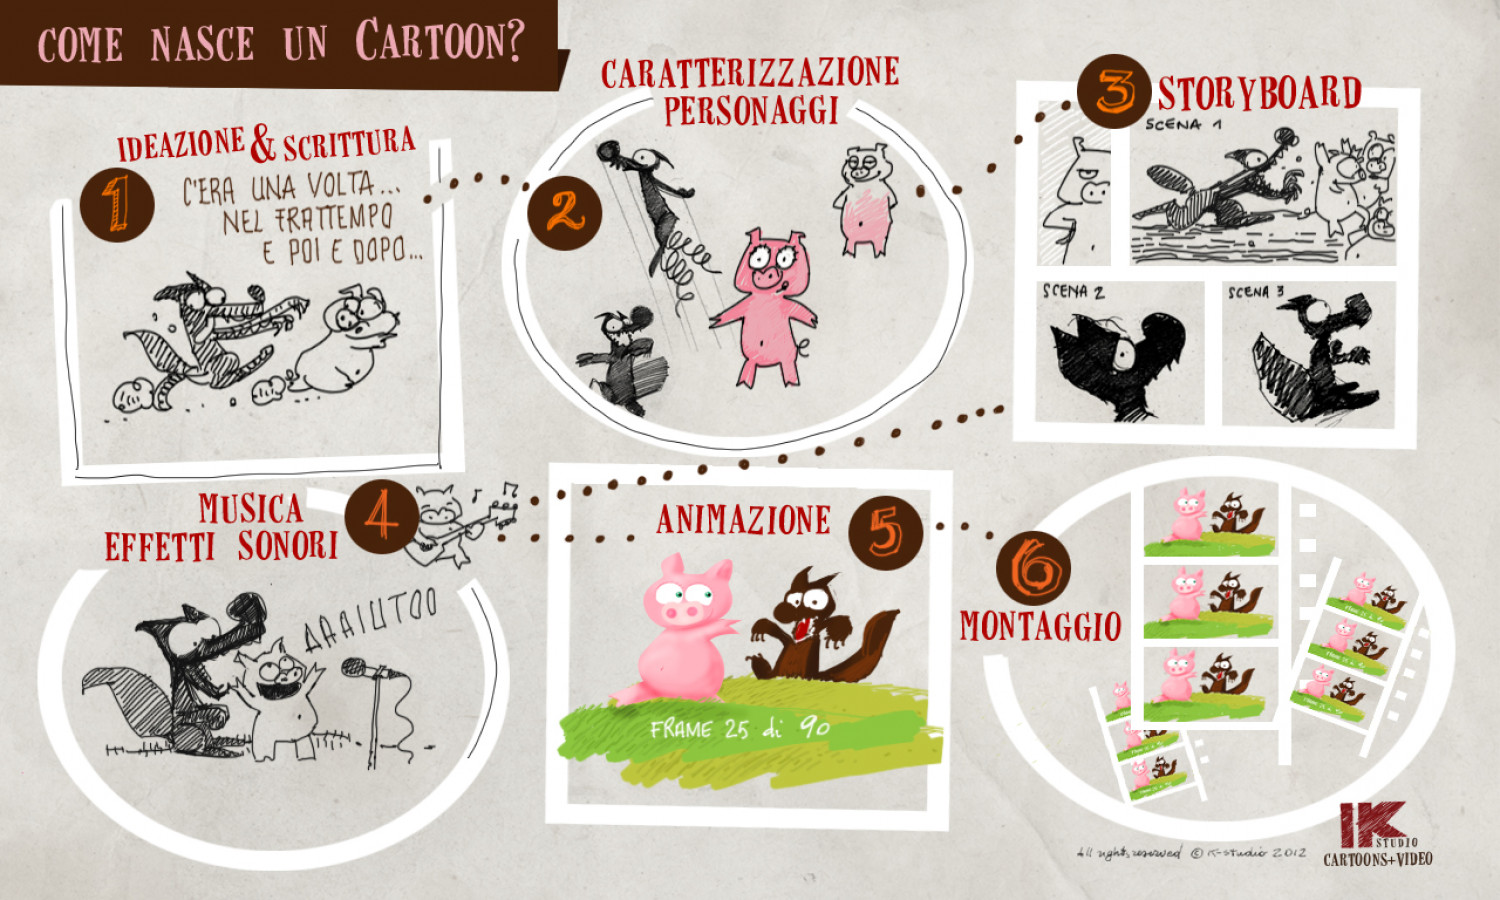 Come nasce un cartoon? Infographic